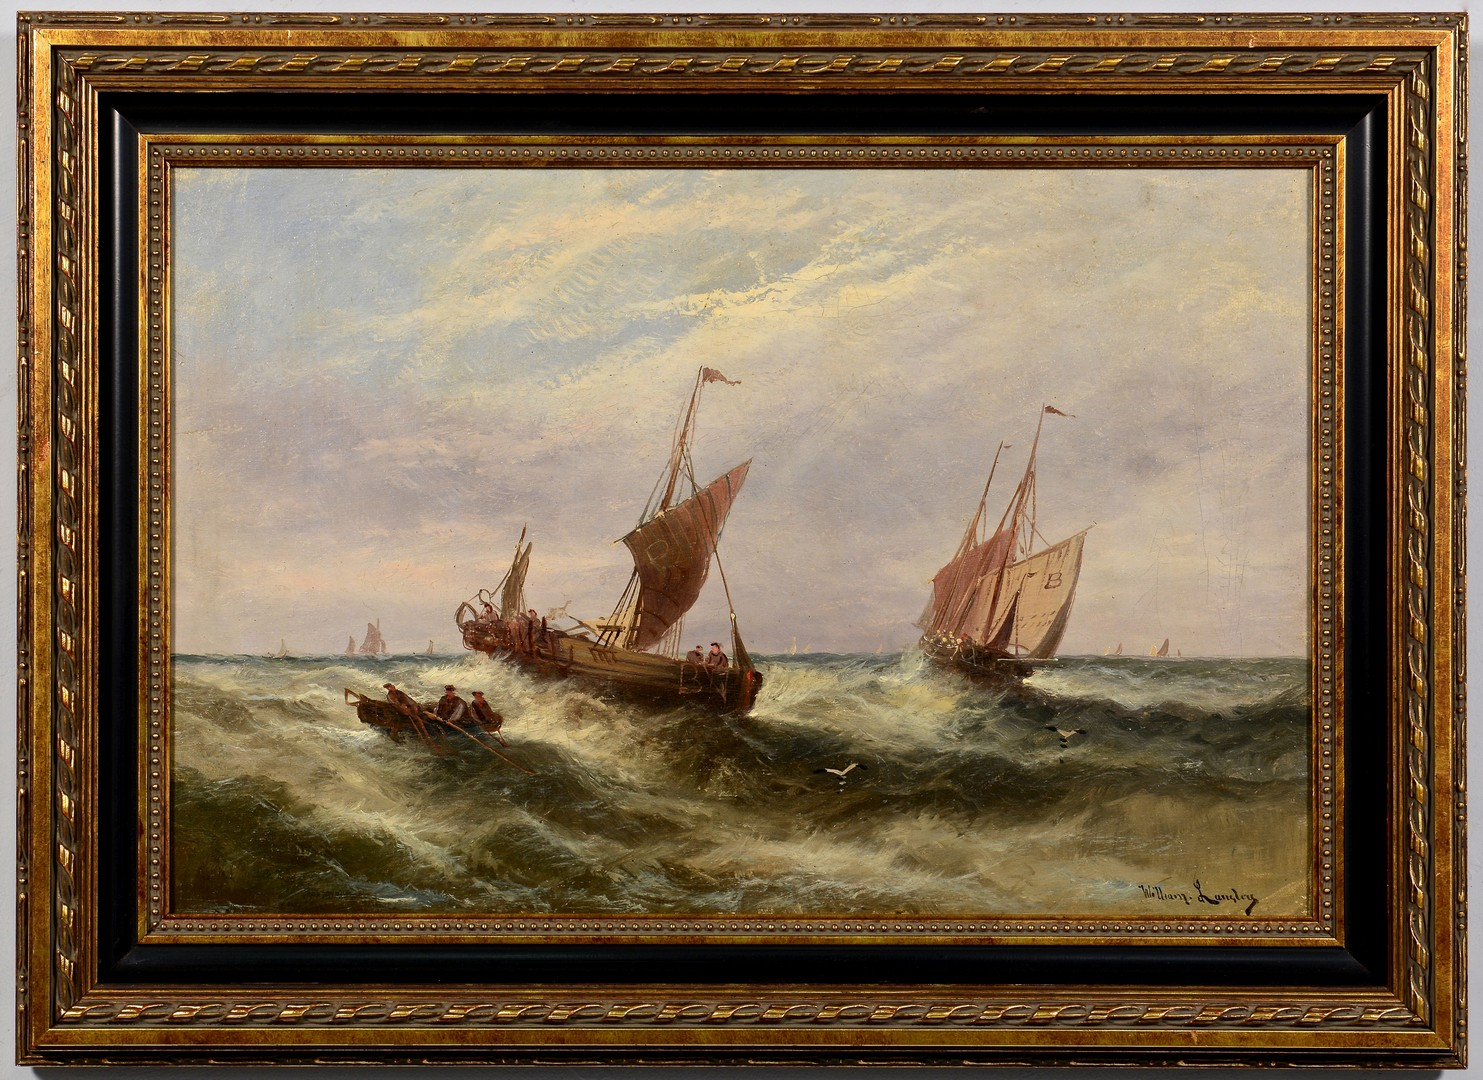 Lot 215: William Langley Seascape, Ships at Sea